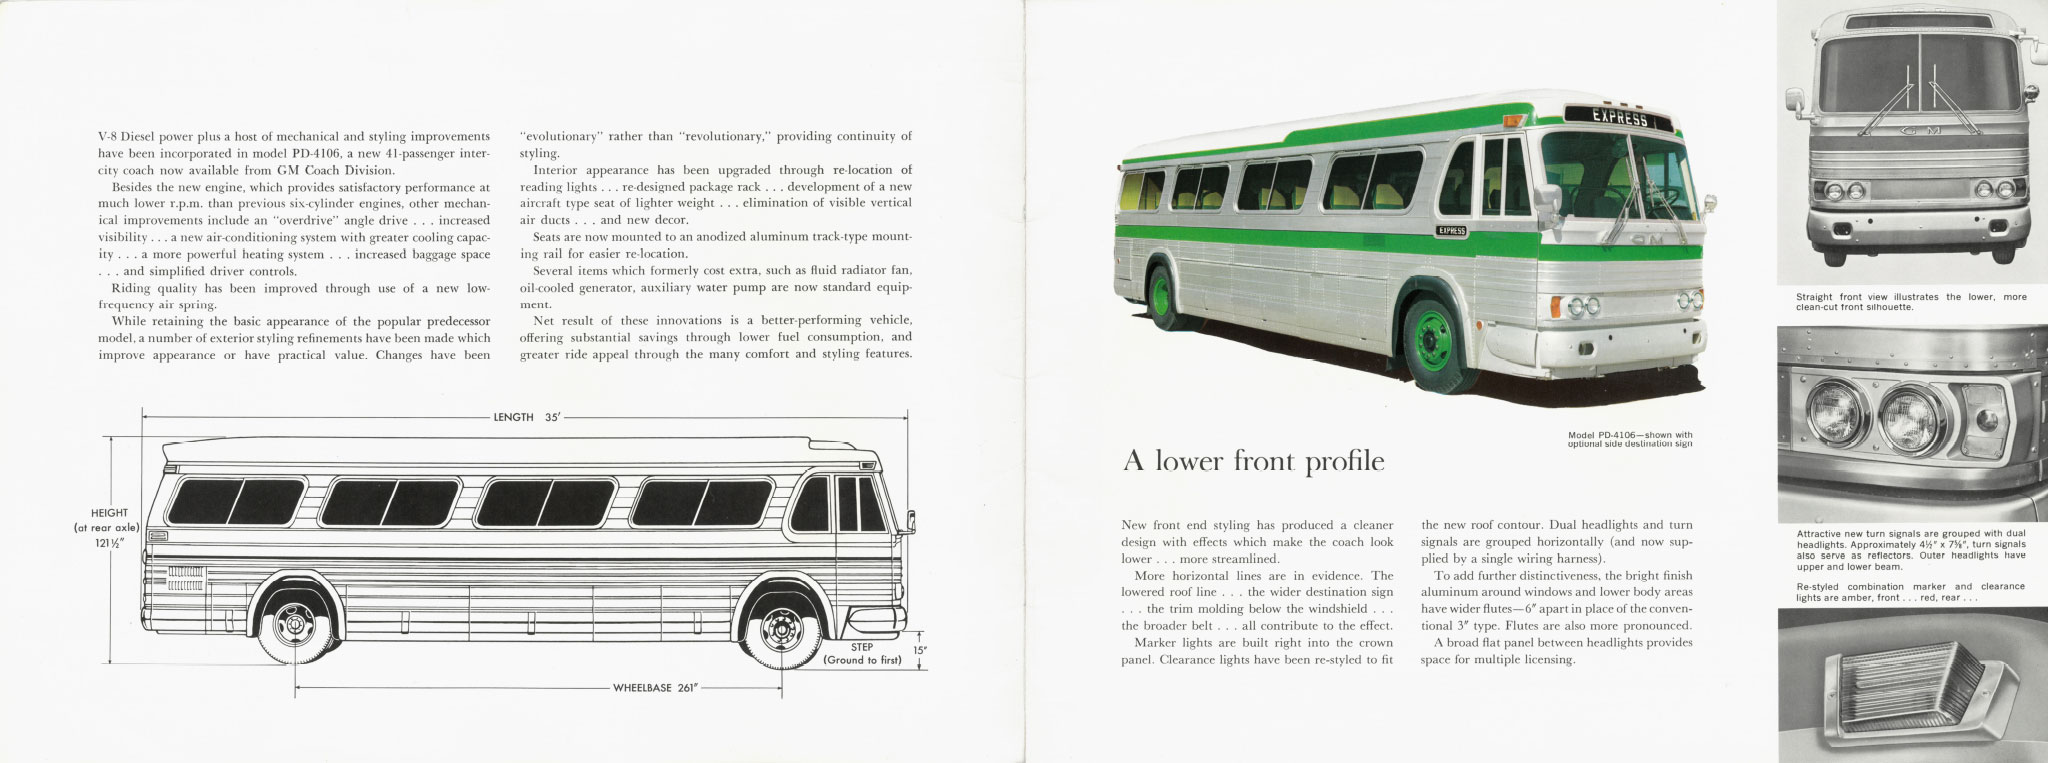 Page from early 1960s GM PD-4106 brochure